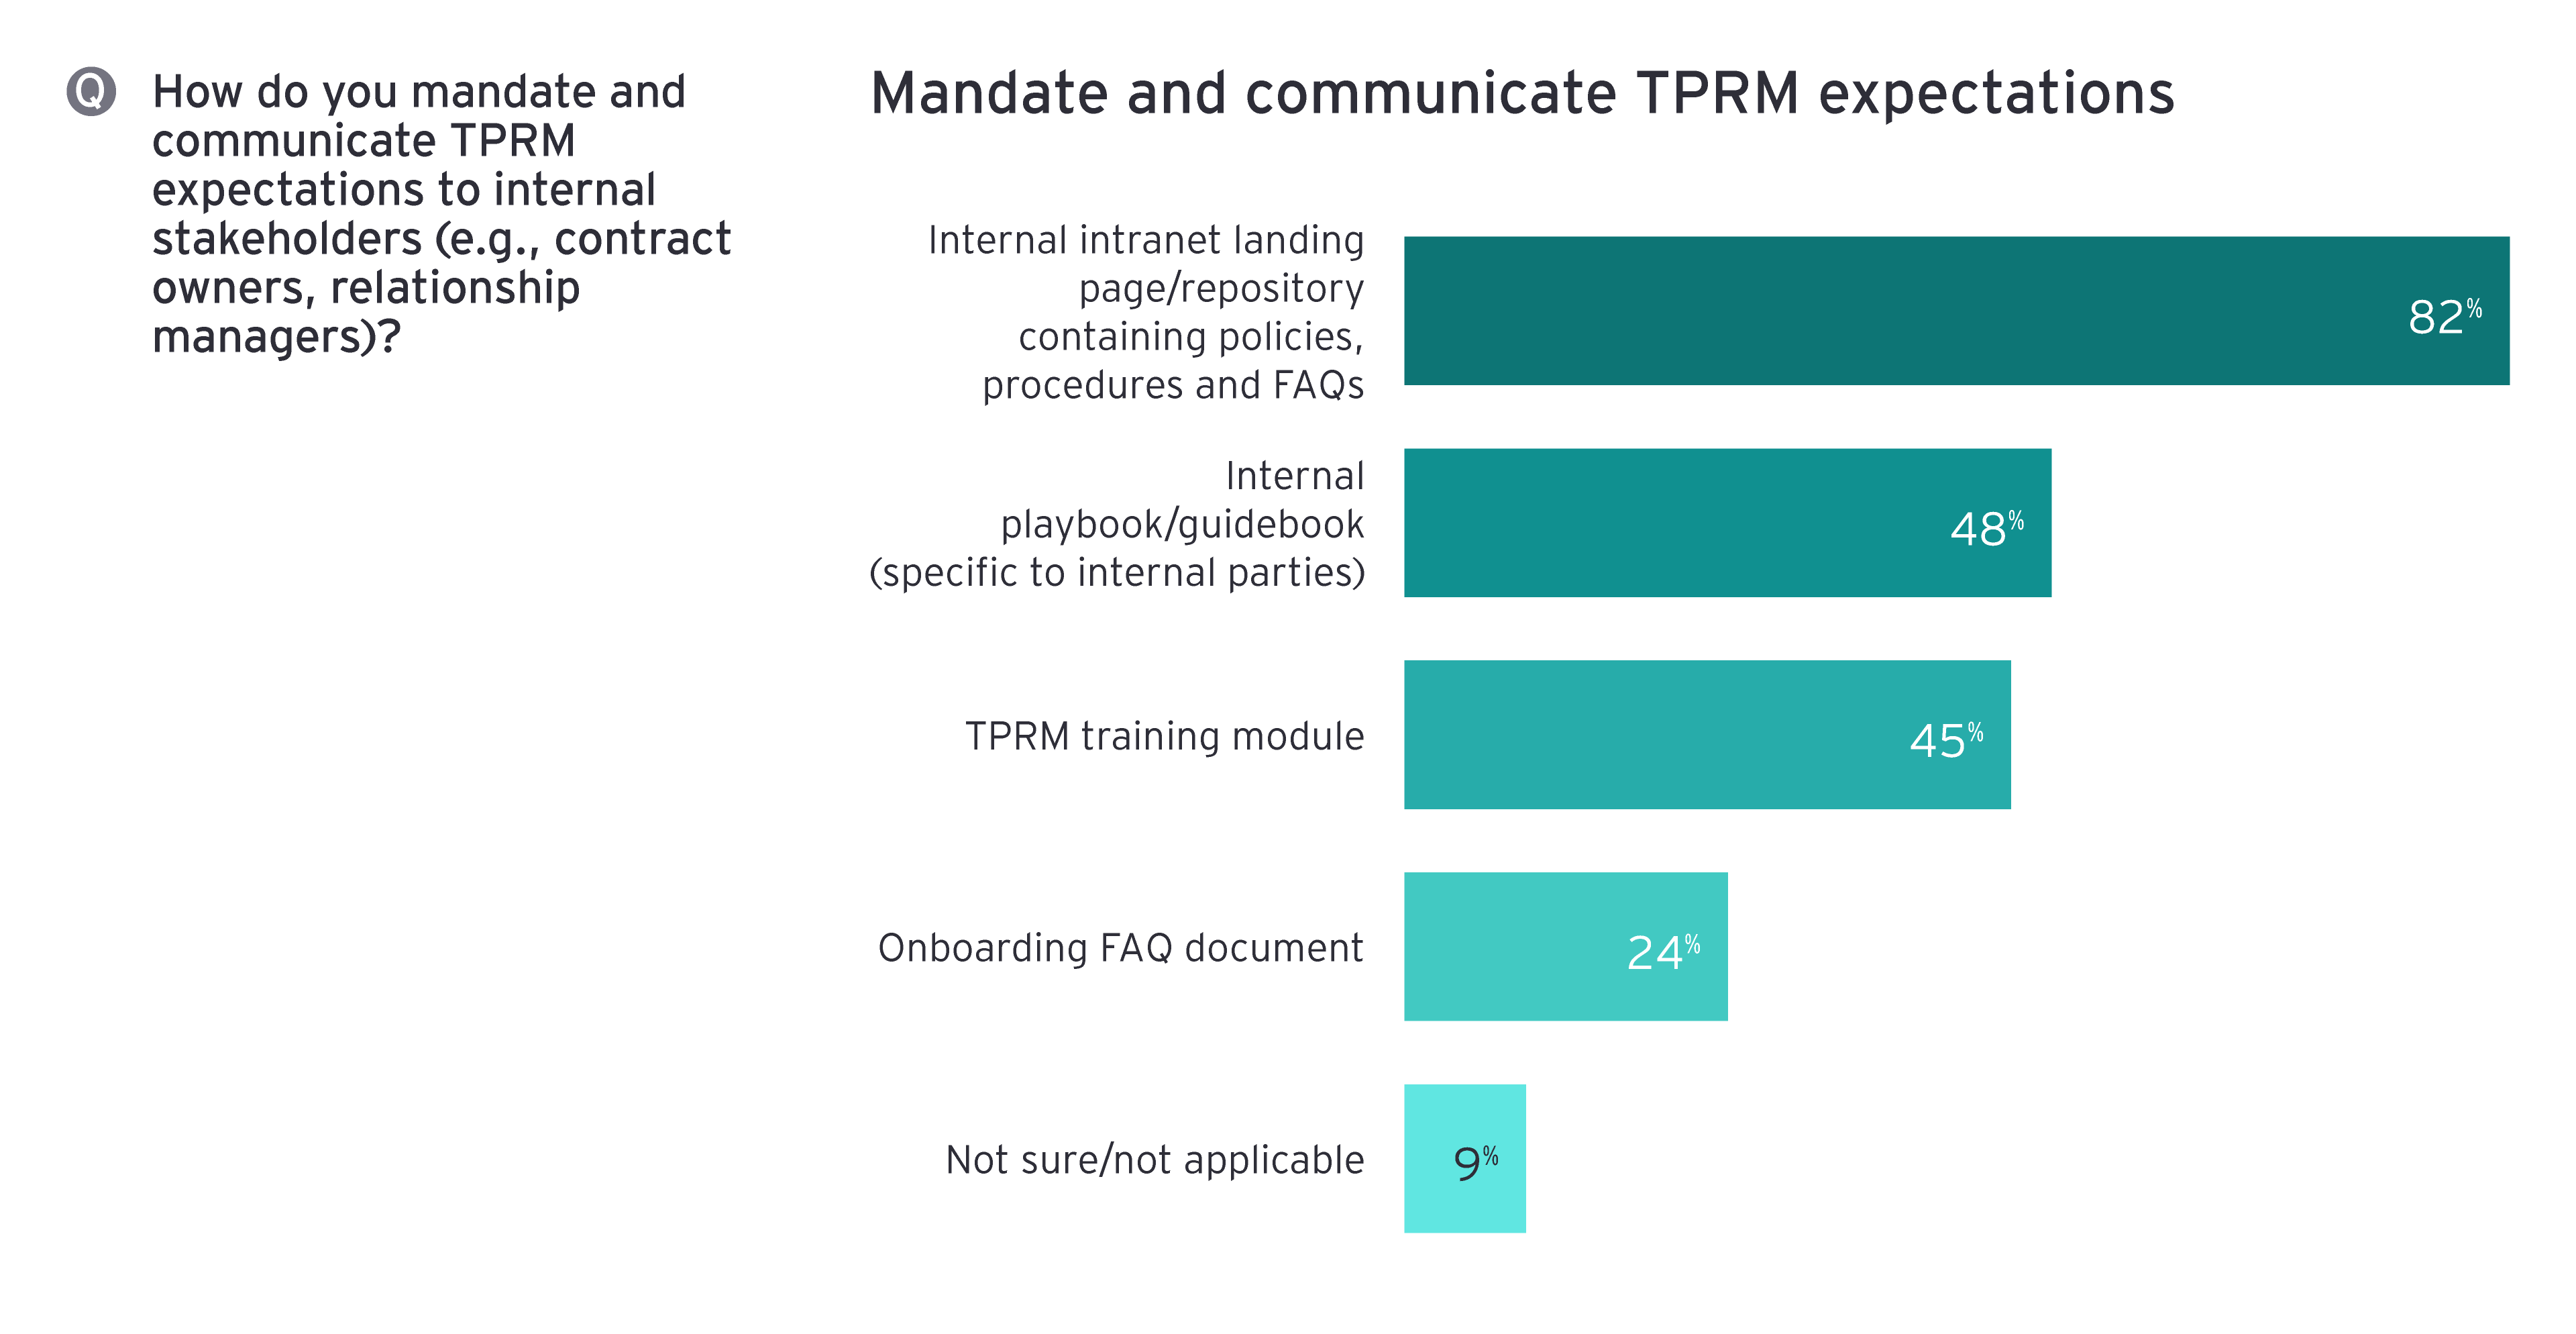 Mandate and communicate TPRM expectations